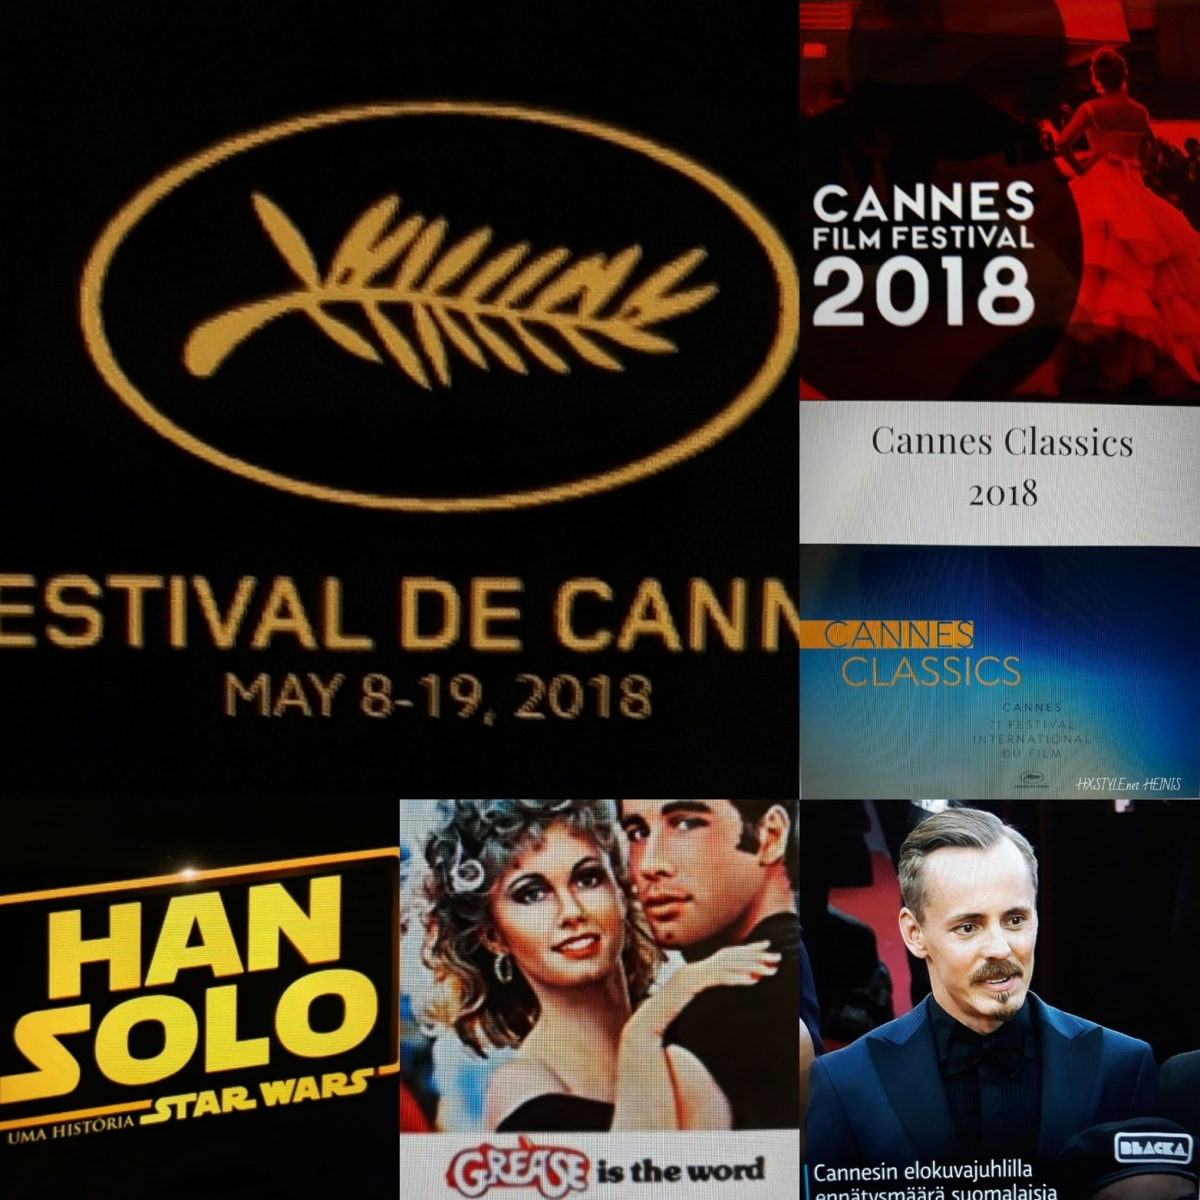 KULTTUURI/CULTURE ELOKUVAT&MOVIES. 71. CANNESIN ELOKUVAJUHLAT, Cannes Film Festival 8. – 19.5.2018, RANSKA. UUTISET, VOITTAJAT LISTA, Suomalaiset, Movie Trailers, Interviews, Movie People. Favourite HXSTYLE.net HEINIS